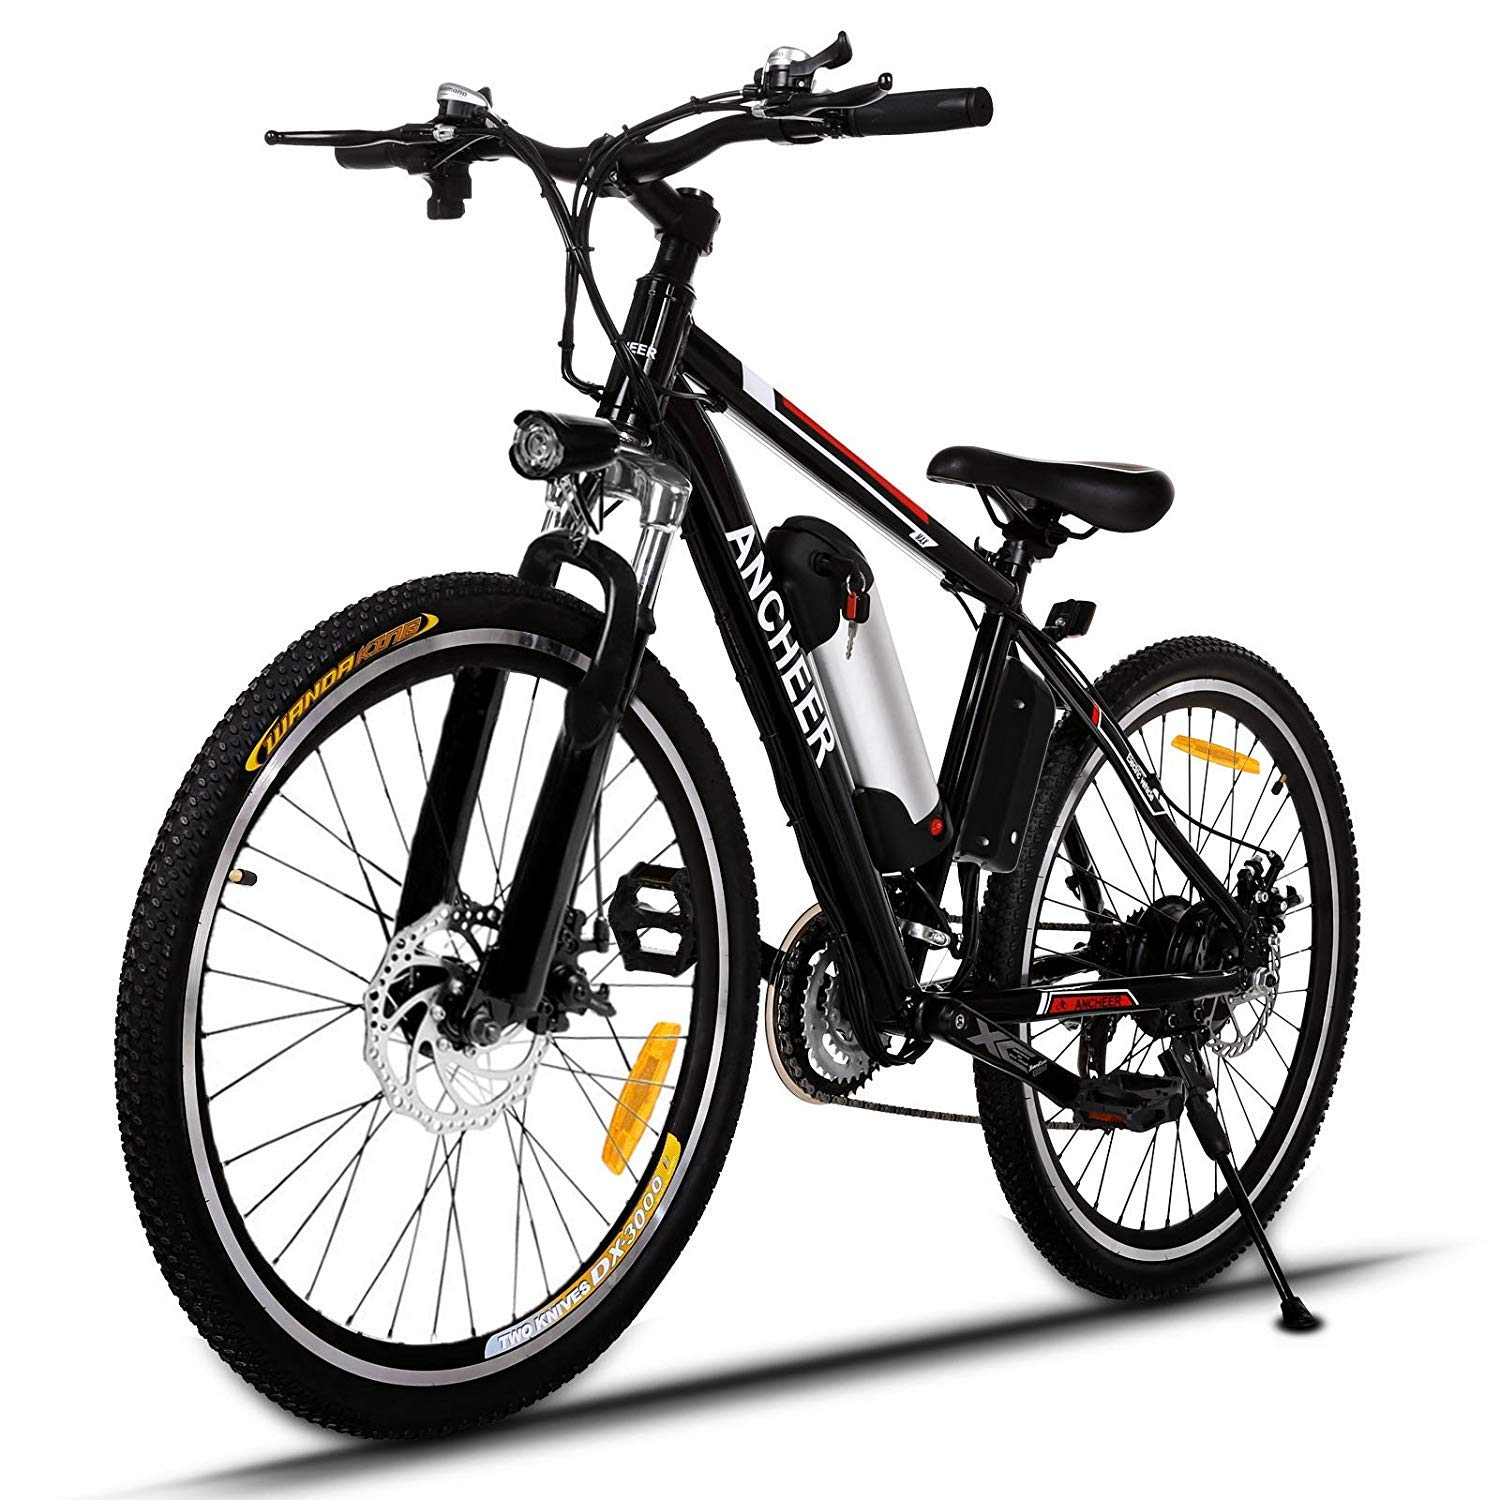 ANCHEER 2019 Pro Electric Mountain Bike, 26 Electric Bicycle with Removable 8AH Lithium-Ion Battery for Adults, 250W Hub Motor and 21 Speed Shifter